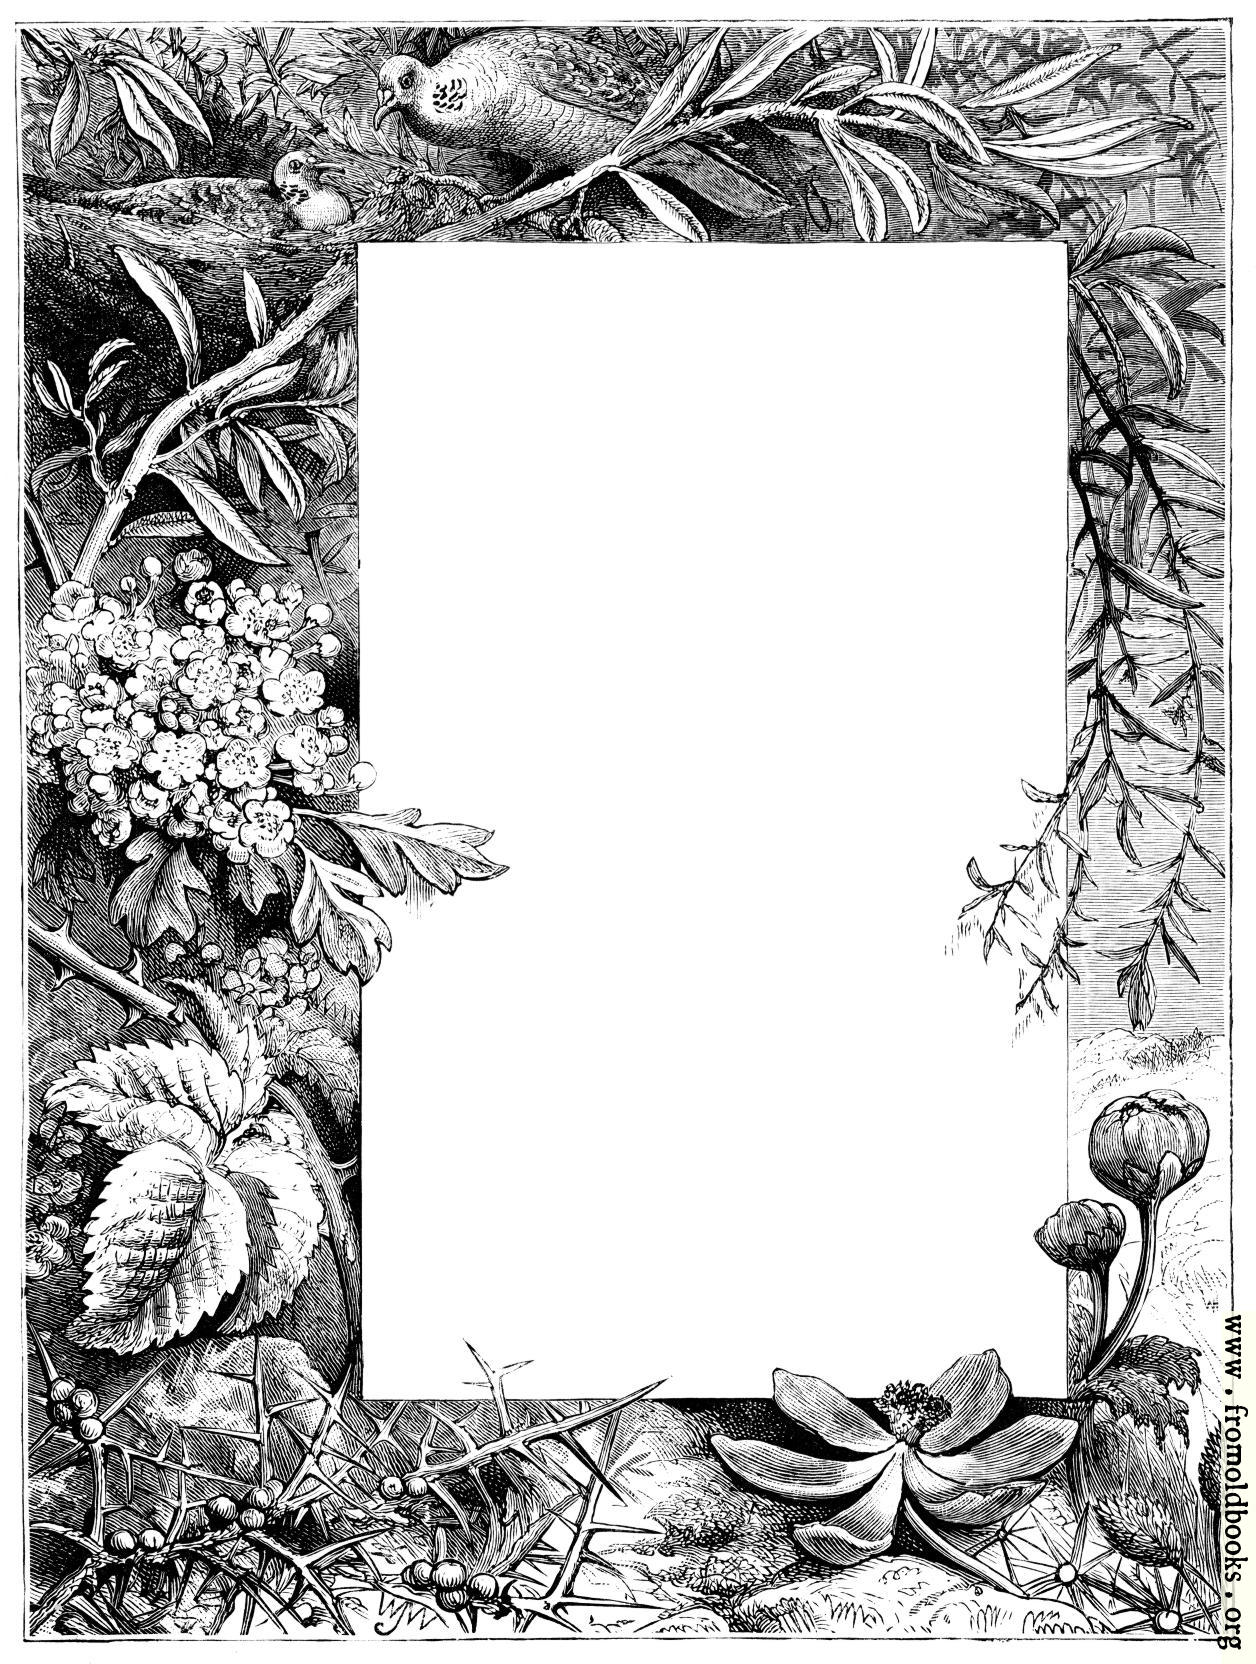 Book Cover Black Mold : Irregular border of flowers birds and nature